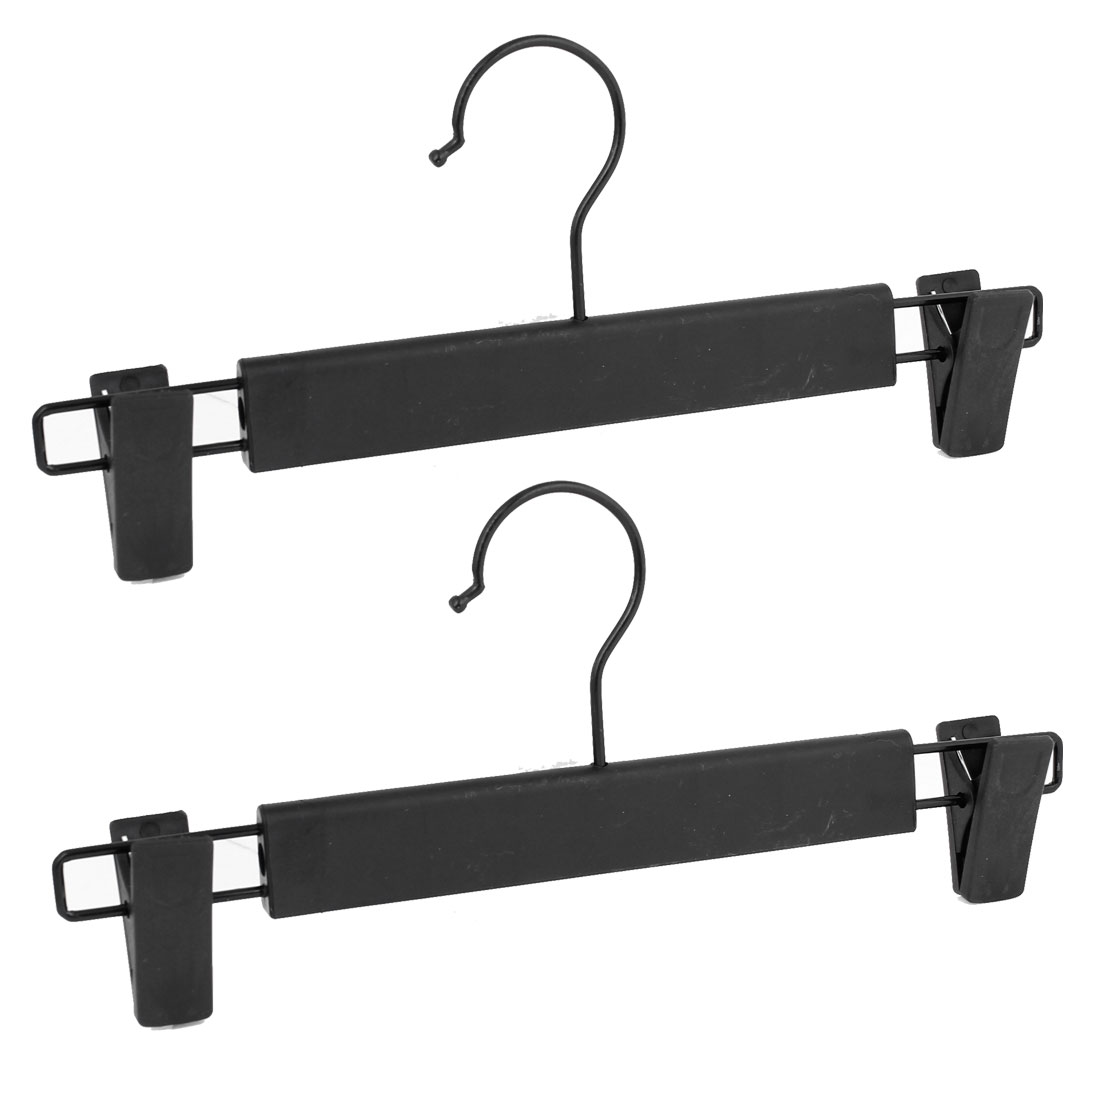 2 Pcs Black Plastic Clips Trousers Pants Non-slip Hangers